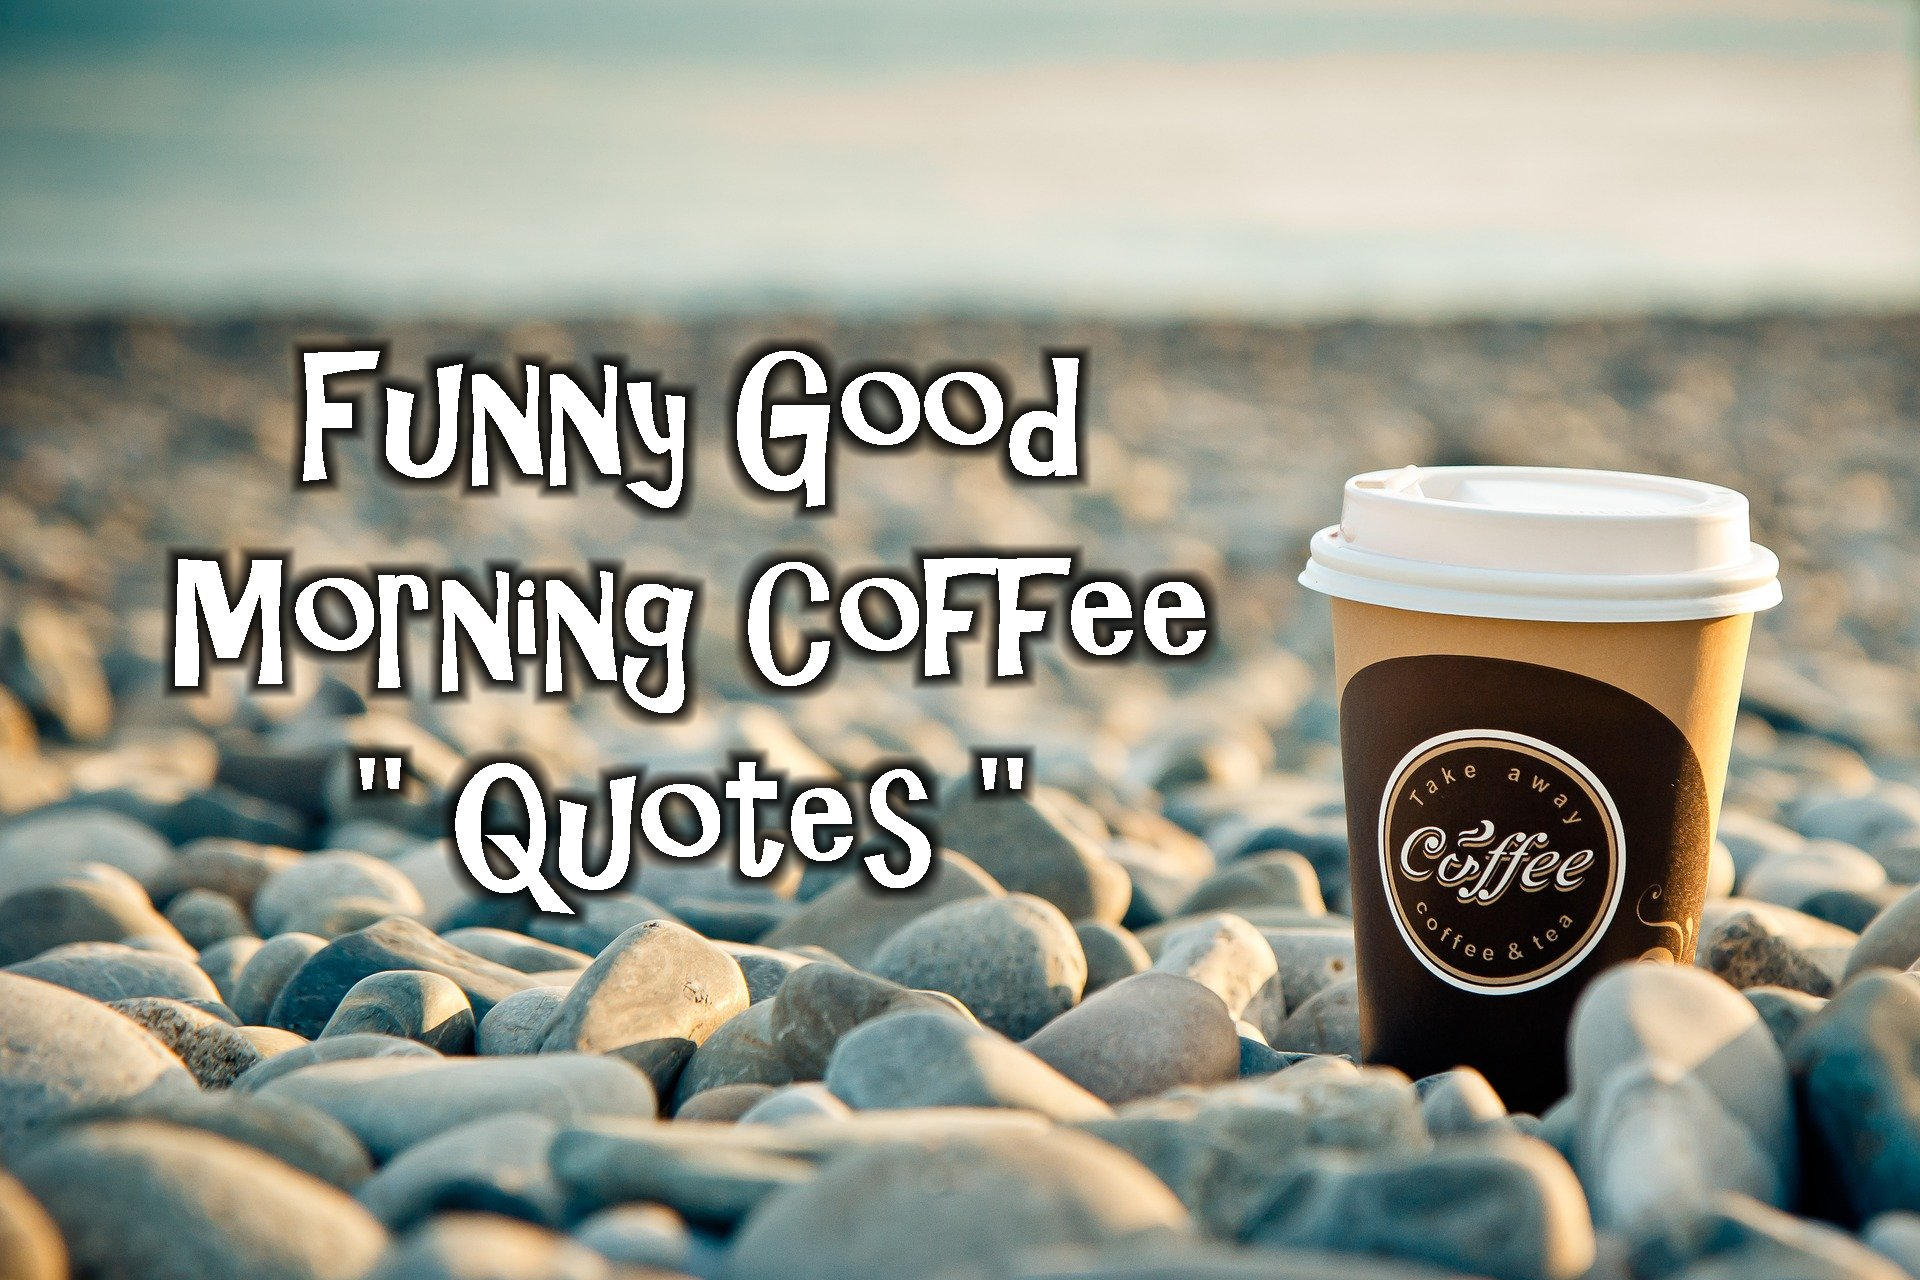 Funny Good Morning Coffee Quotes - CoffeeNWine